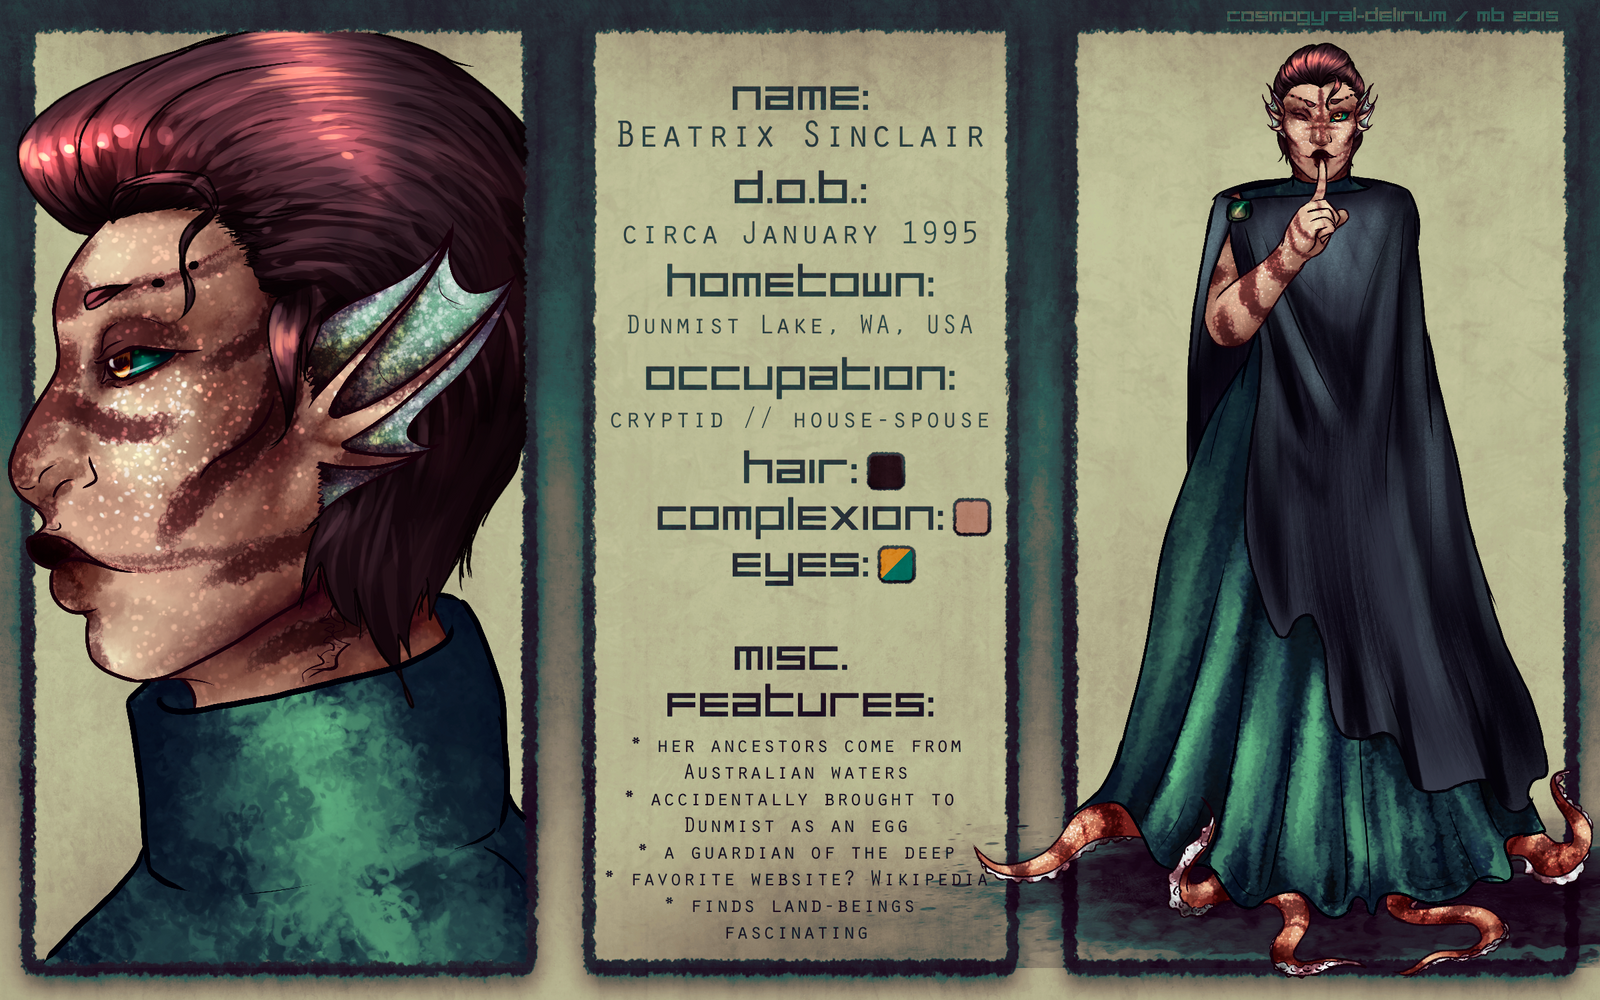 Character Sheet: Beatrix by cosmogyral-delirium